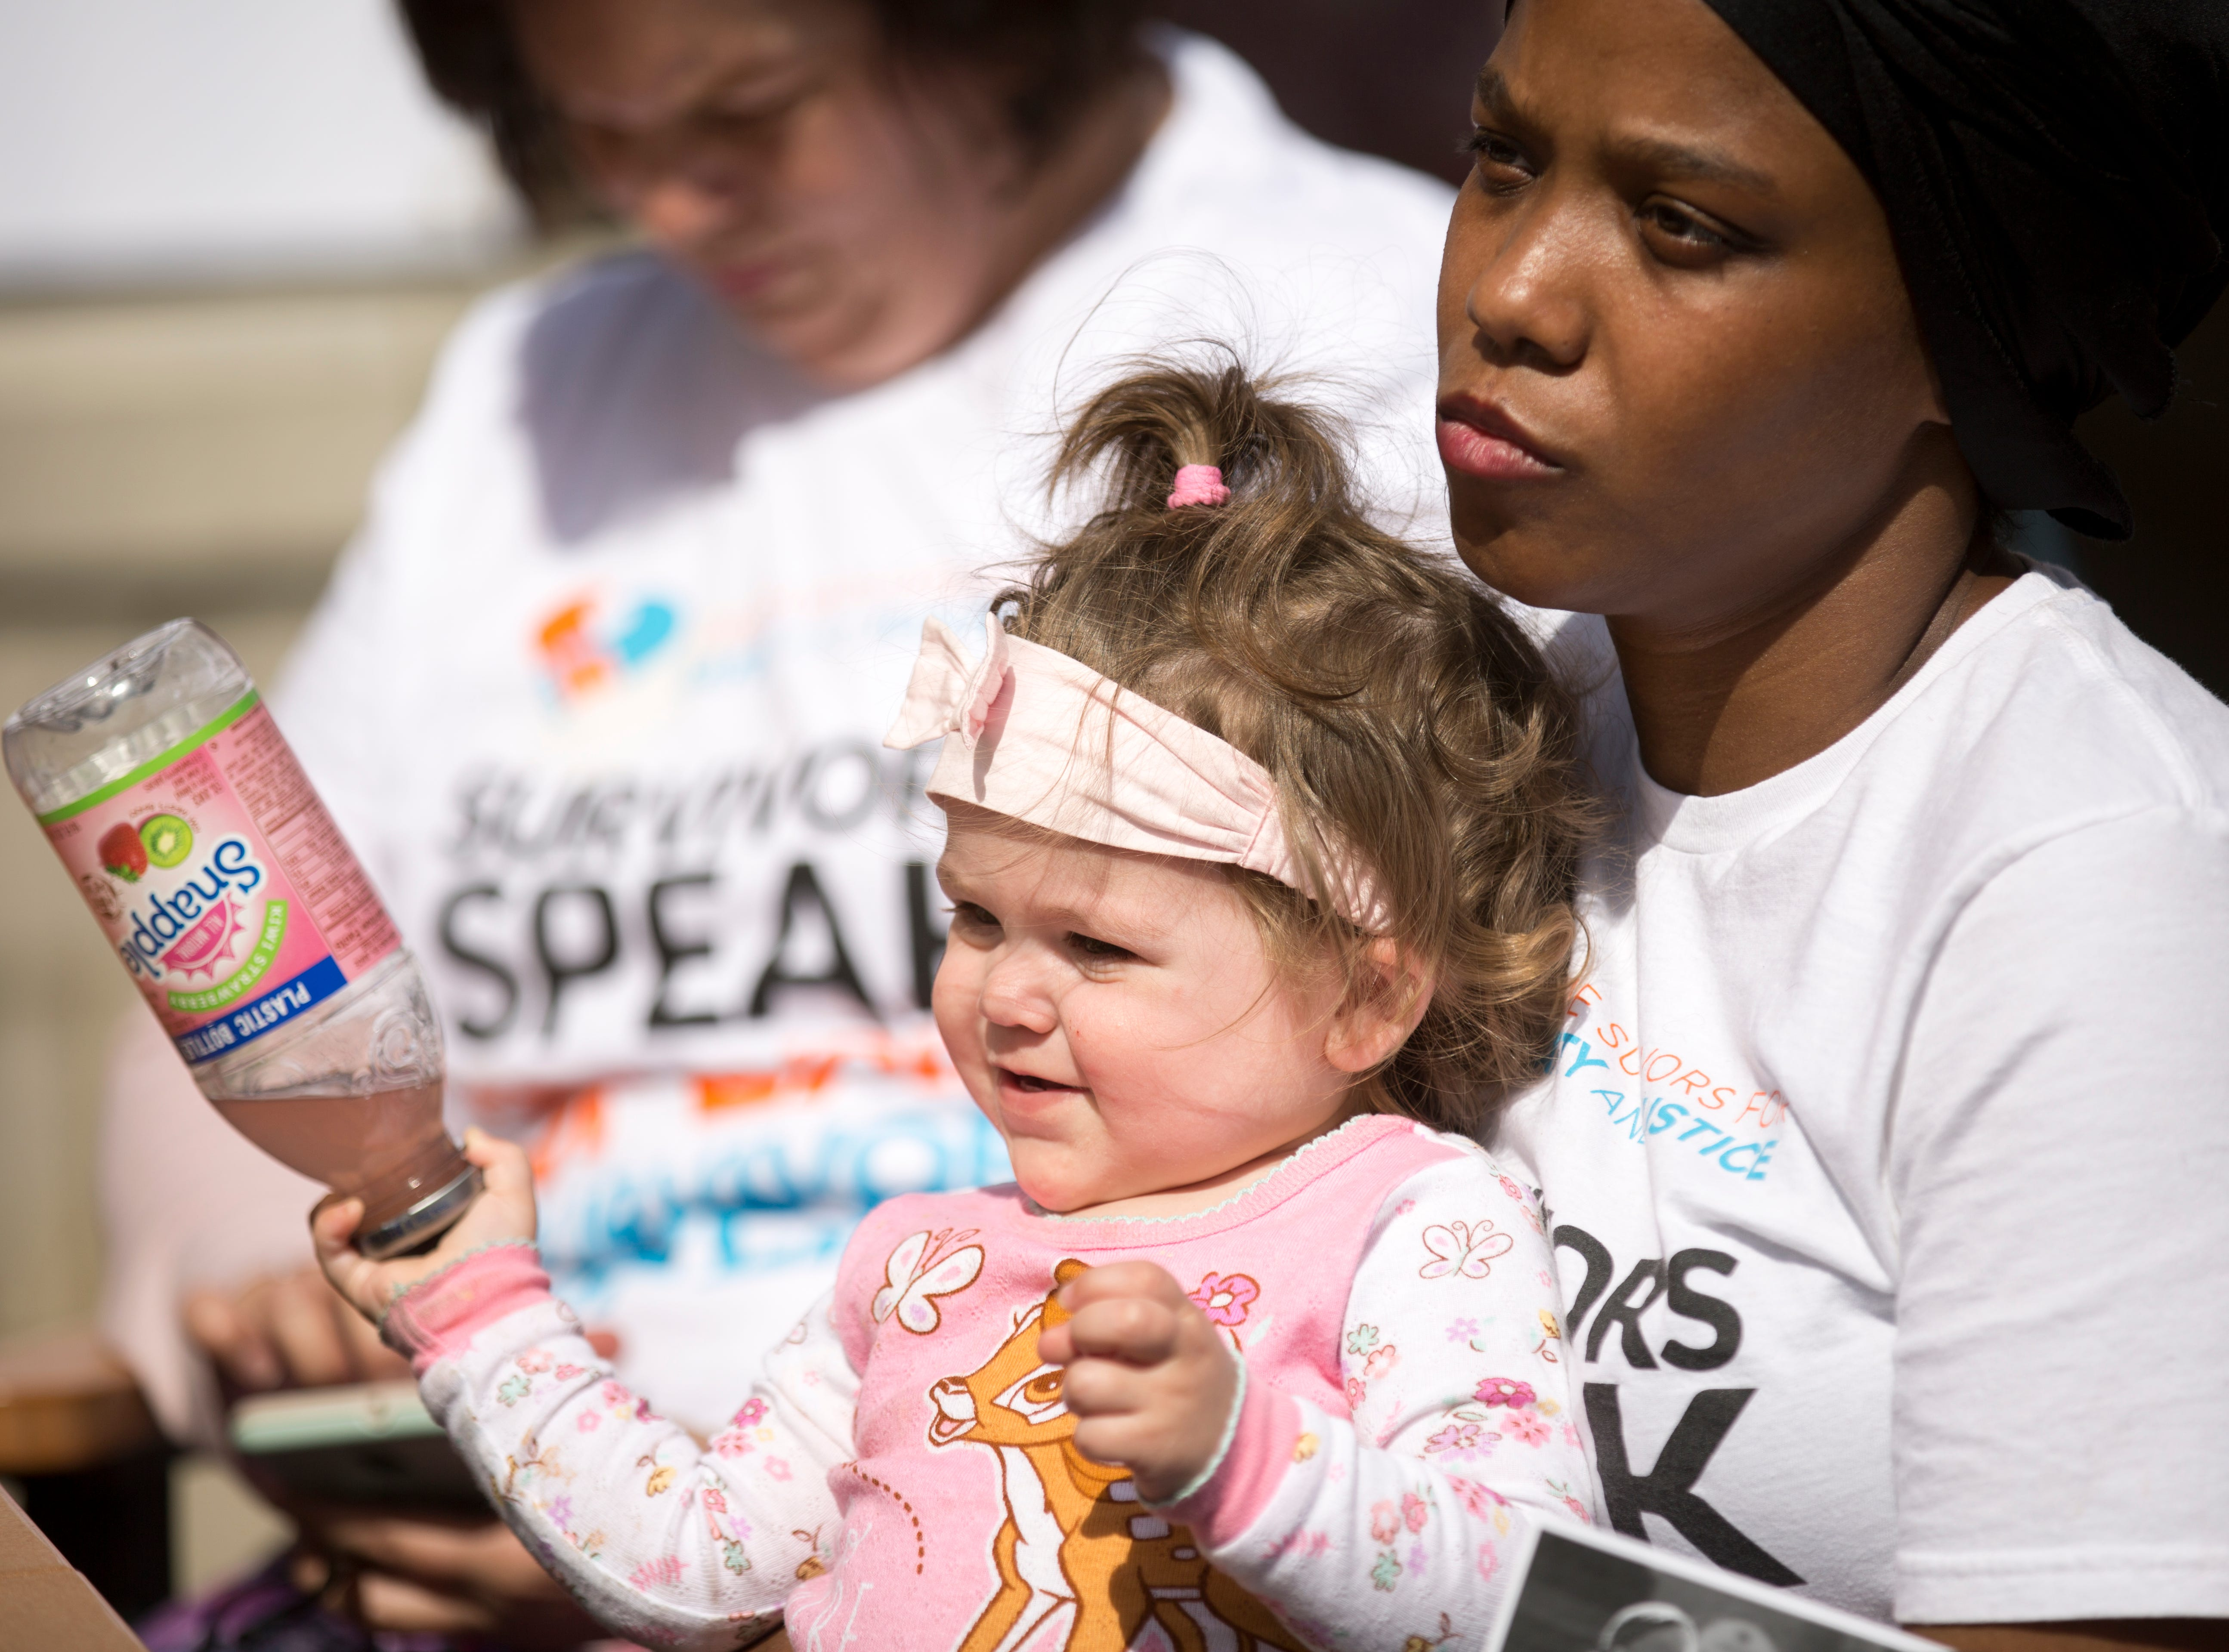 Megan Stewart, of Springfield, Ohio, holds her friend, Haleigh Young's child, Marleigh, 1, during the healing vigil at St. Paul Village in Madisonville, Saturday, April 13. The Cincinnati chapter of Crime Survivors for Safety and Justice were taking part in the national healing vigil day that gave survivors an opportunity to share their story. Stewart, herself a survivor said, 'In order for me to truly believe that I'm a survivor, I have to let go and understand that I'm no longer in that situation anymore.'